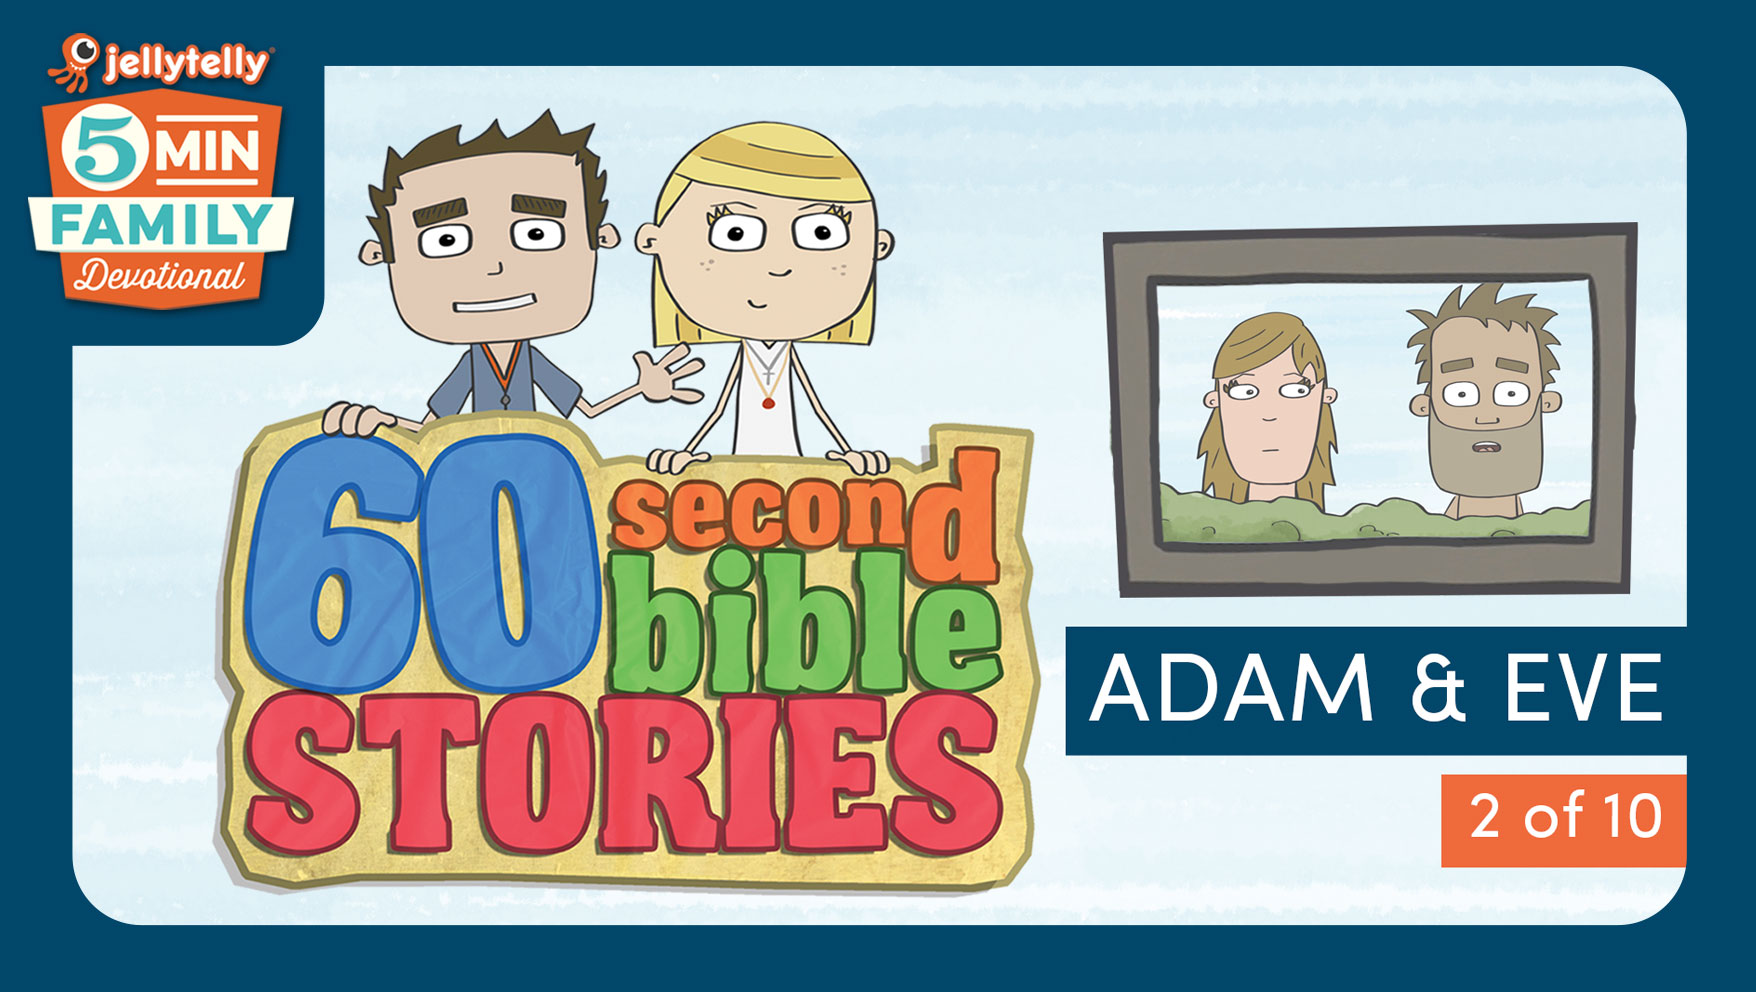 Adam & Eve - 60 Second Bible Stories 5 Minute Family Devotional